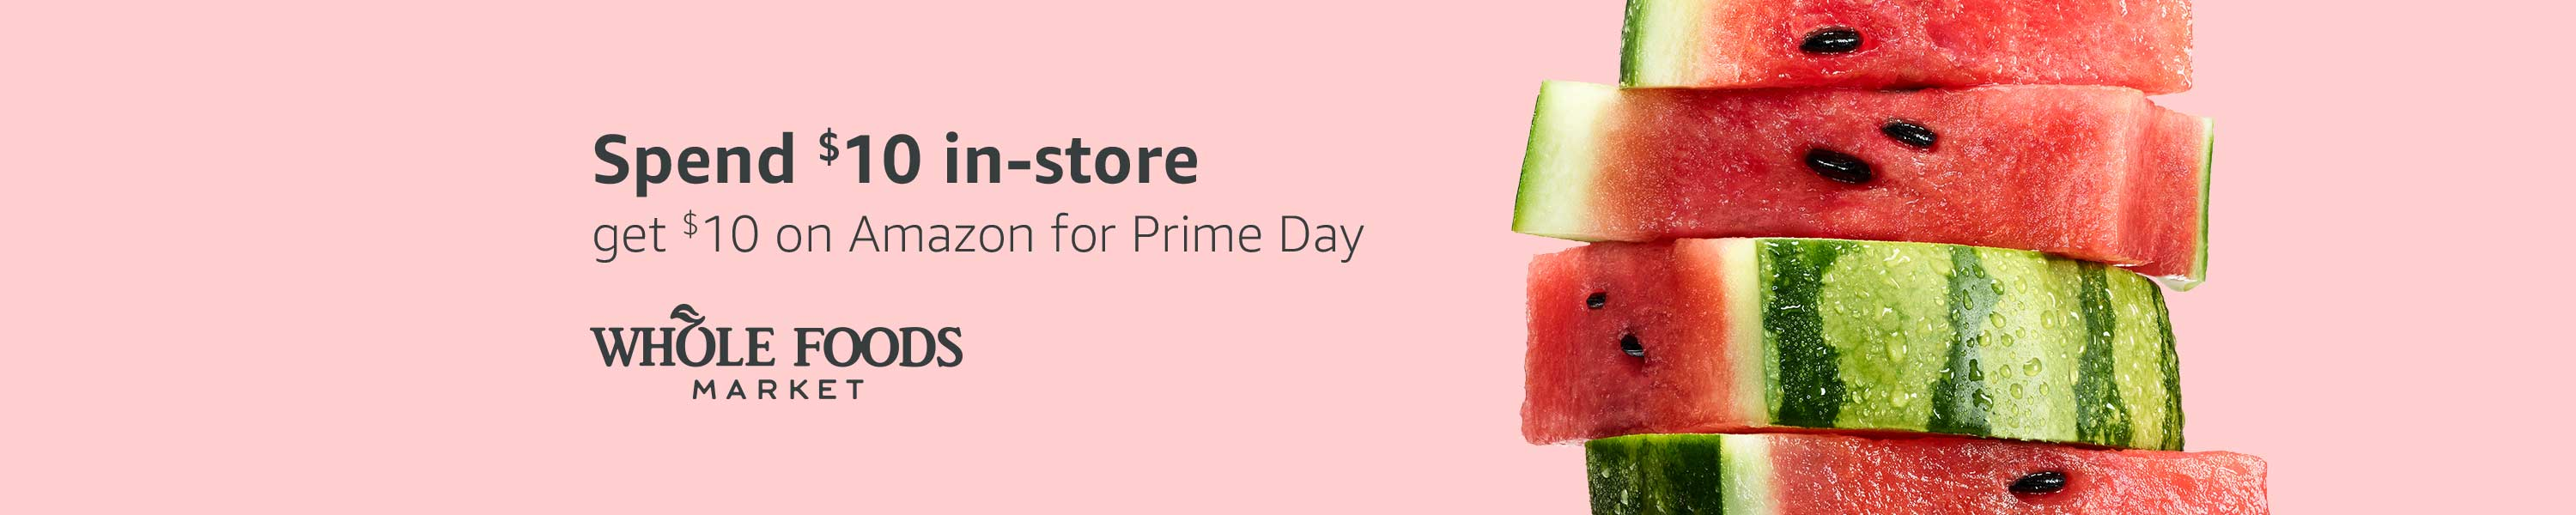 Spend $10 in-store at Whole Foods Market, get $10 on Amazon for Prime Day